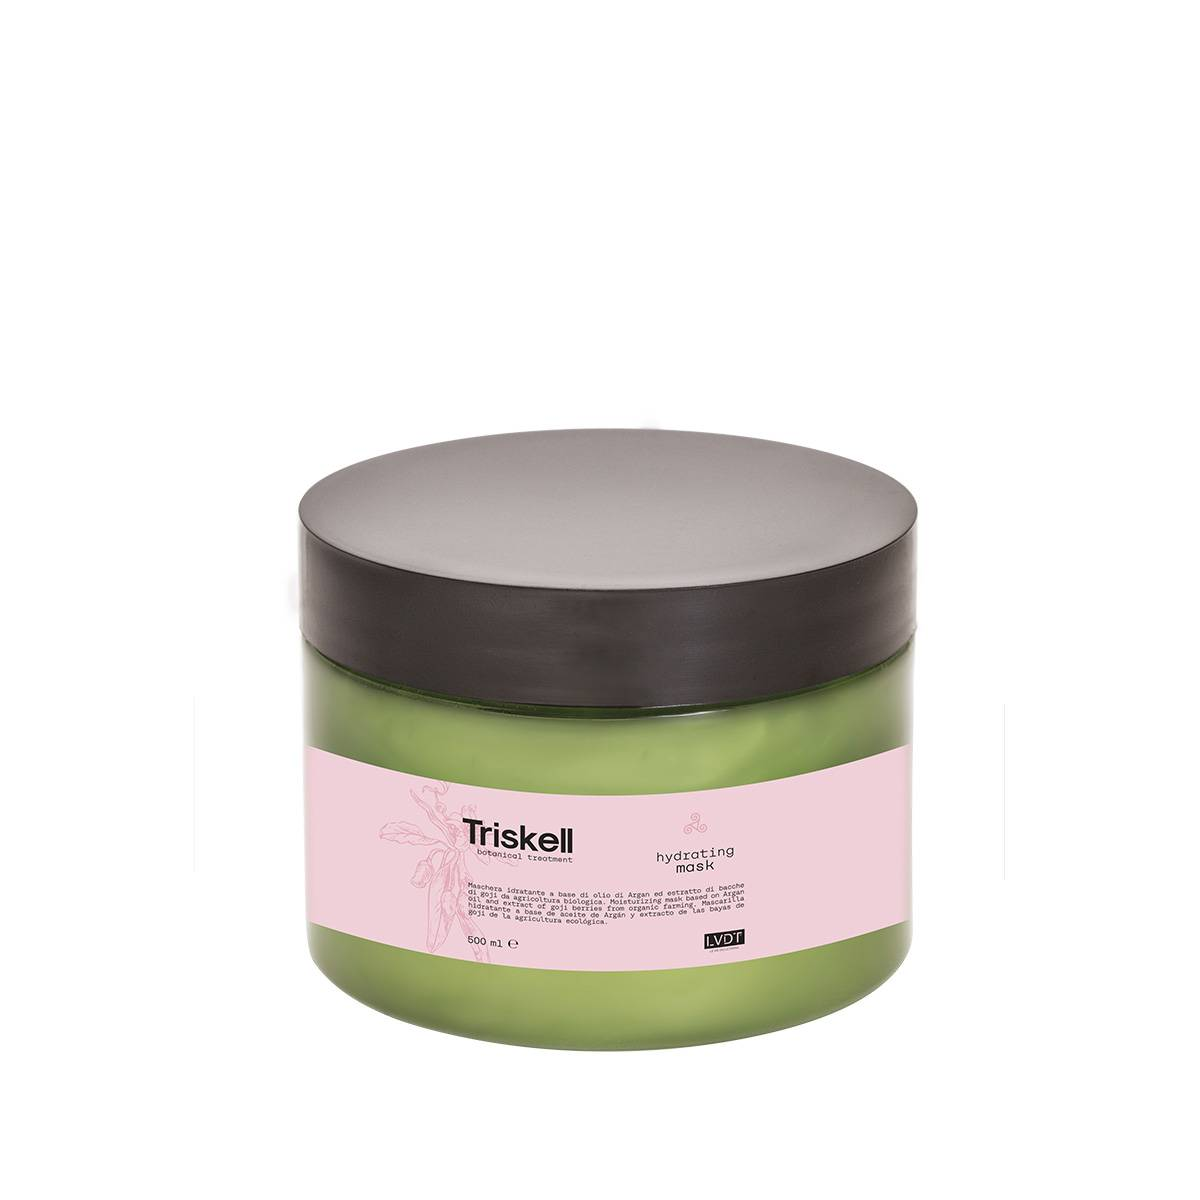 Hydrating Mask 250ml Triskell Nuova Botanical Treatment